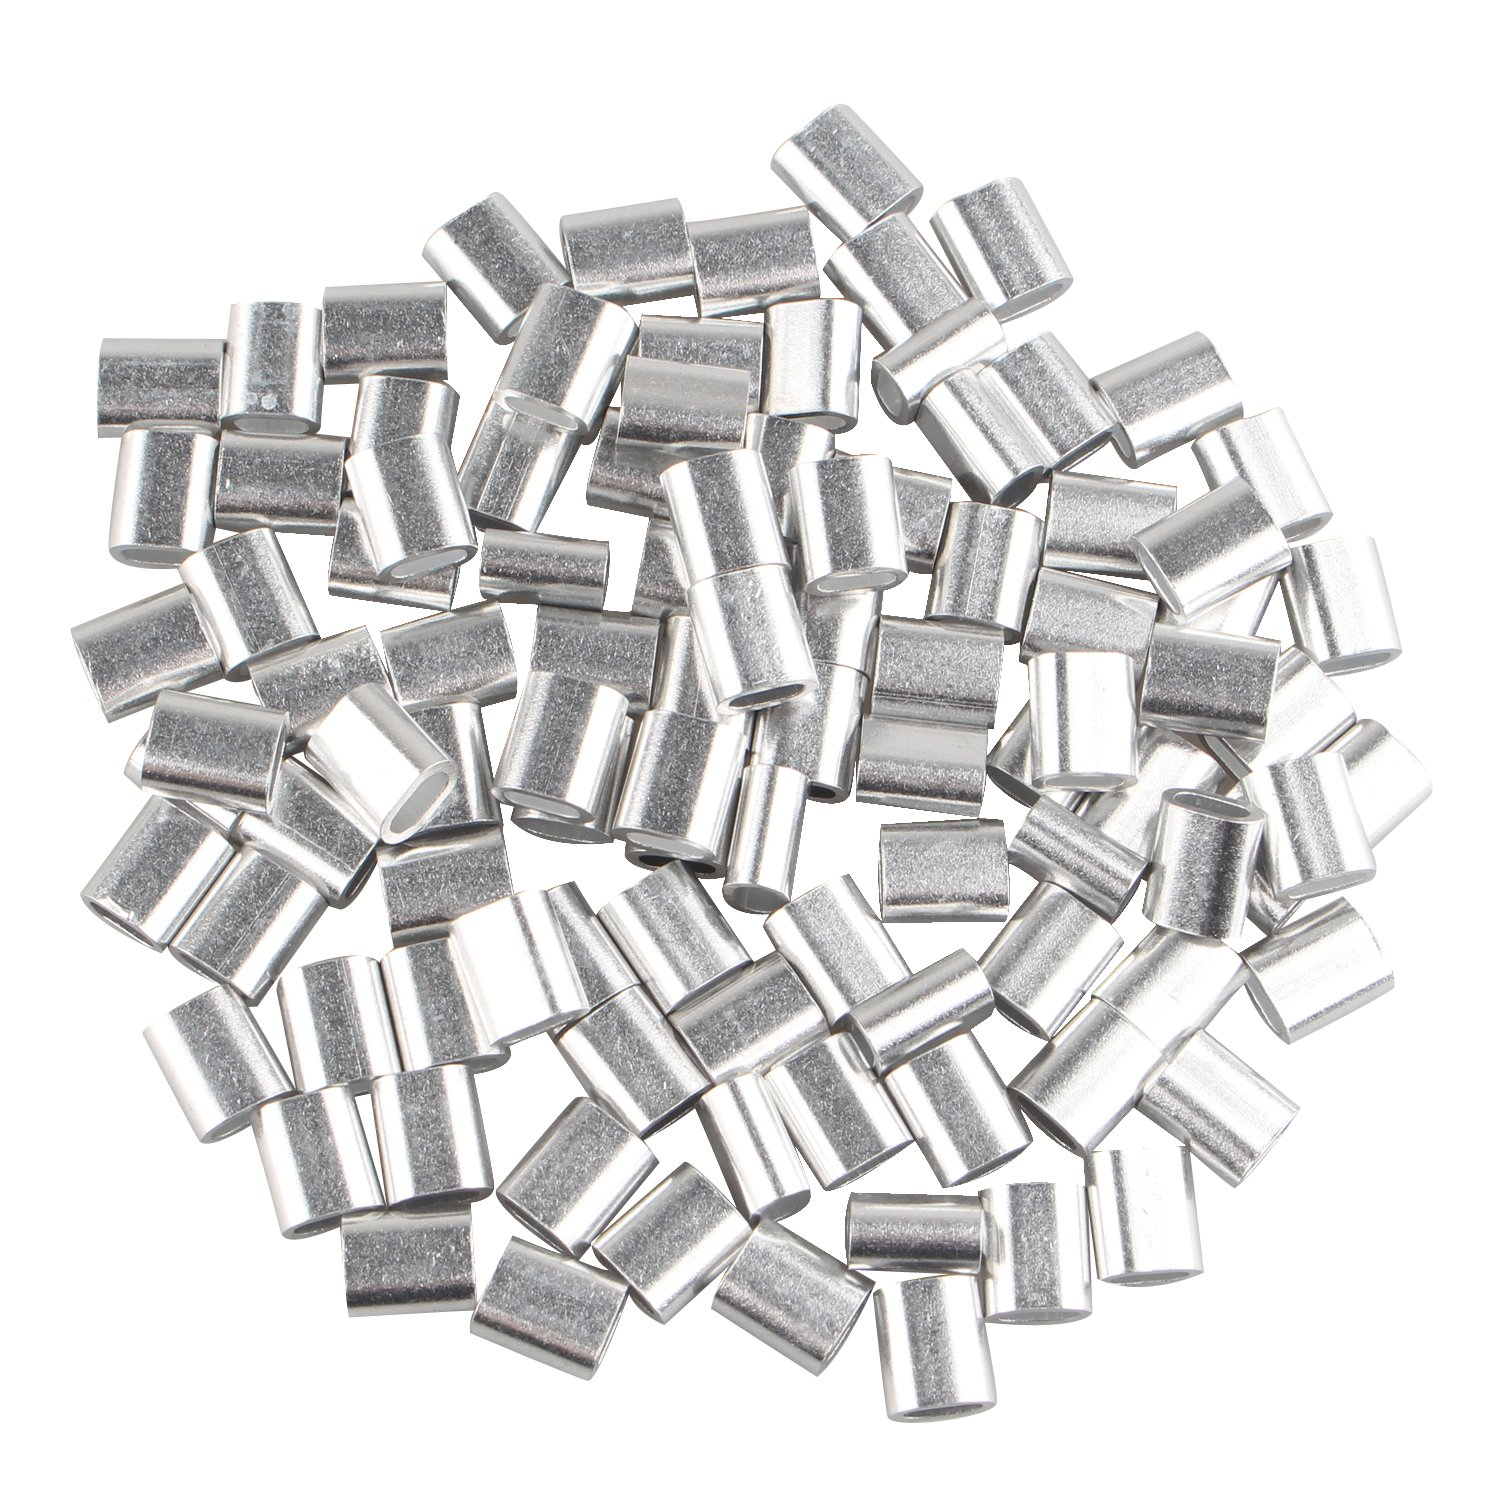 100 pcs Aluminum Crimping Loop Sleeve Clips Oval Shaped for 2.5mm Cable Wire Rope Silver Tone FUSD